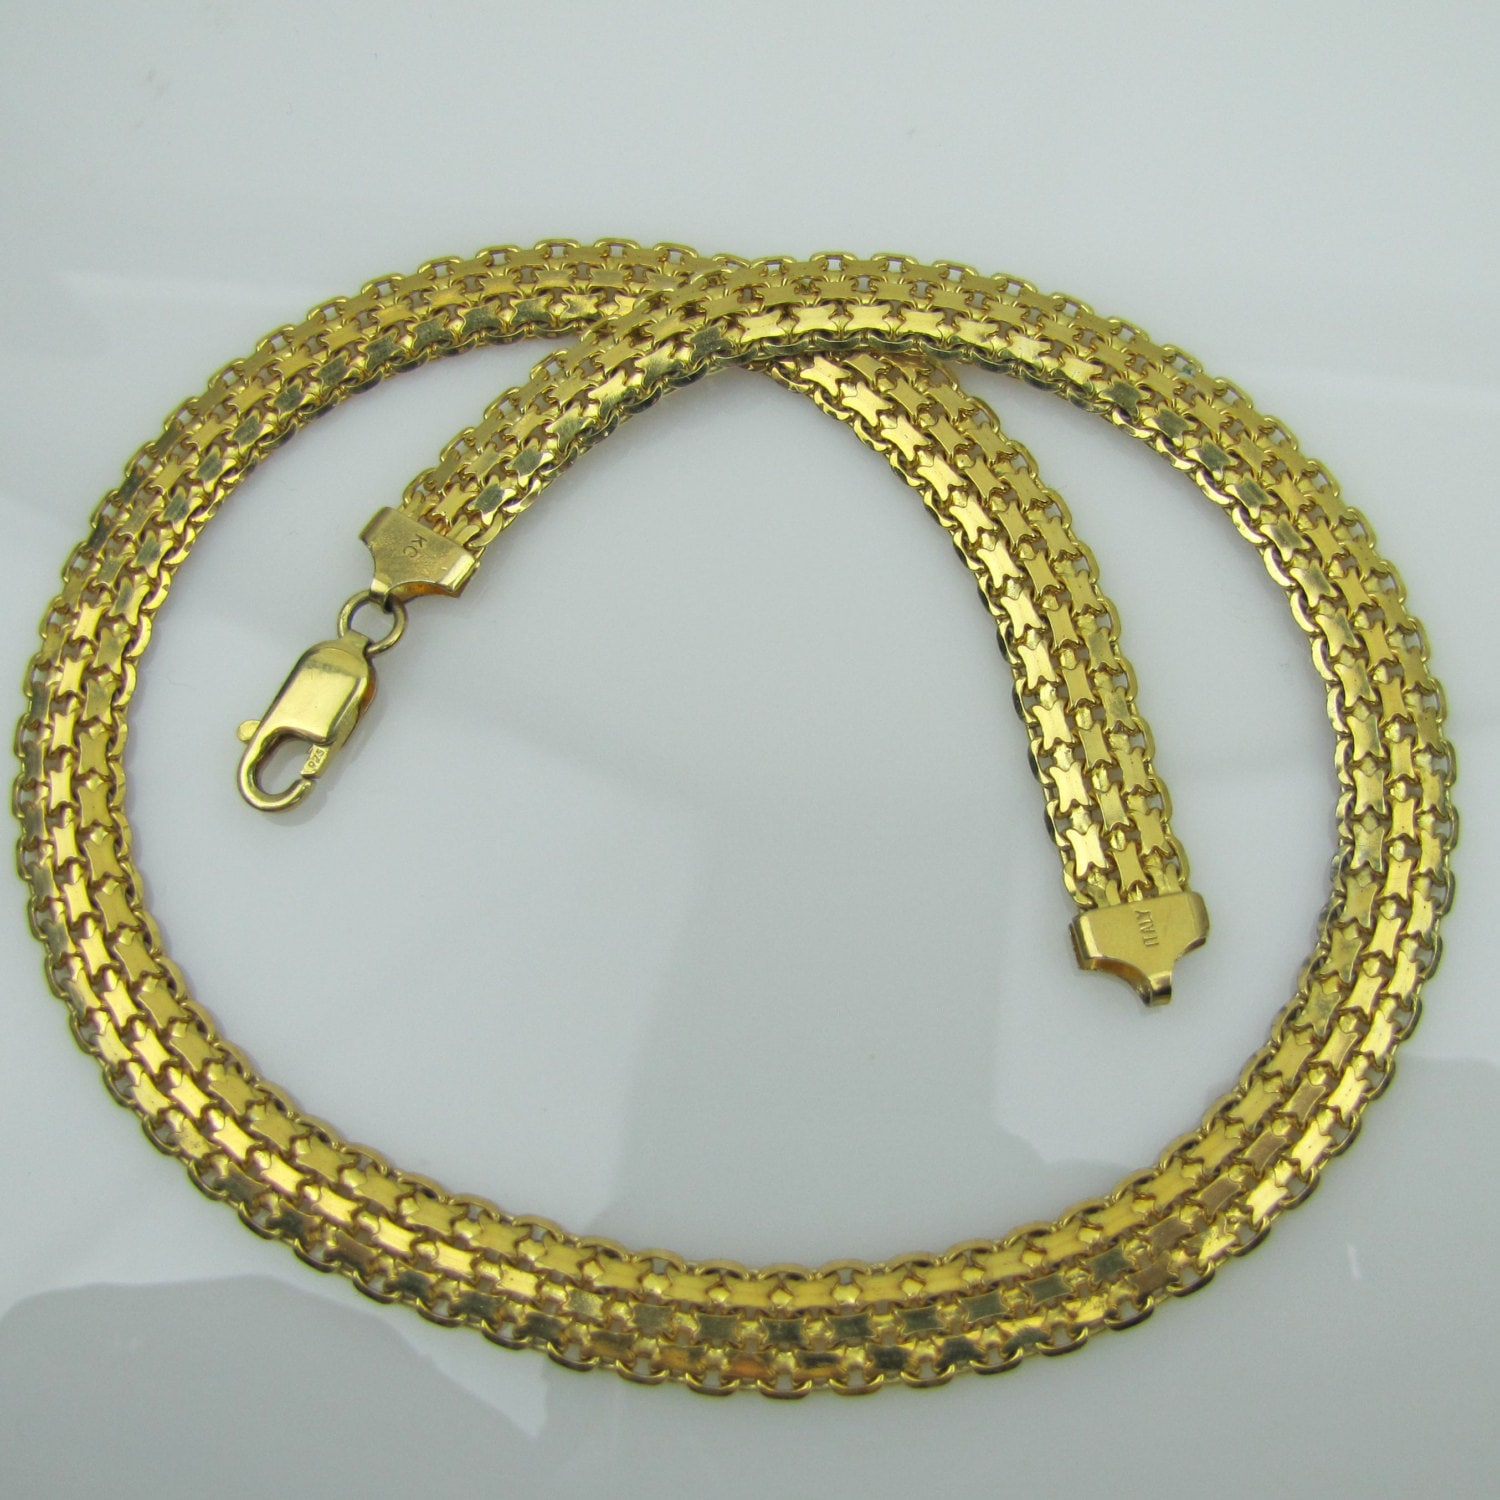 Italian Gold Panther Collar Necklace 18K Gold Plated 925